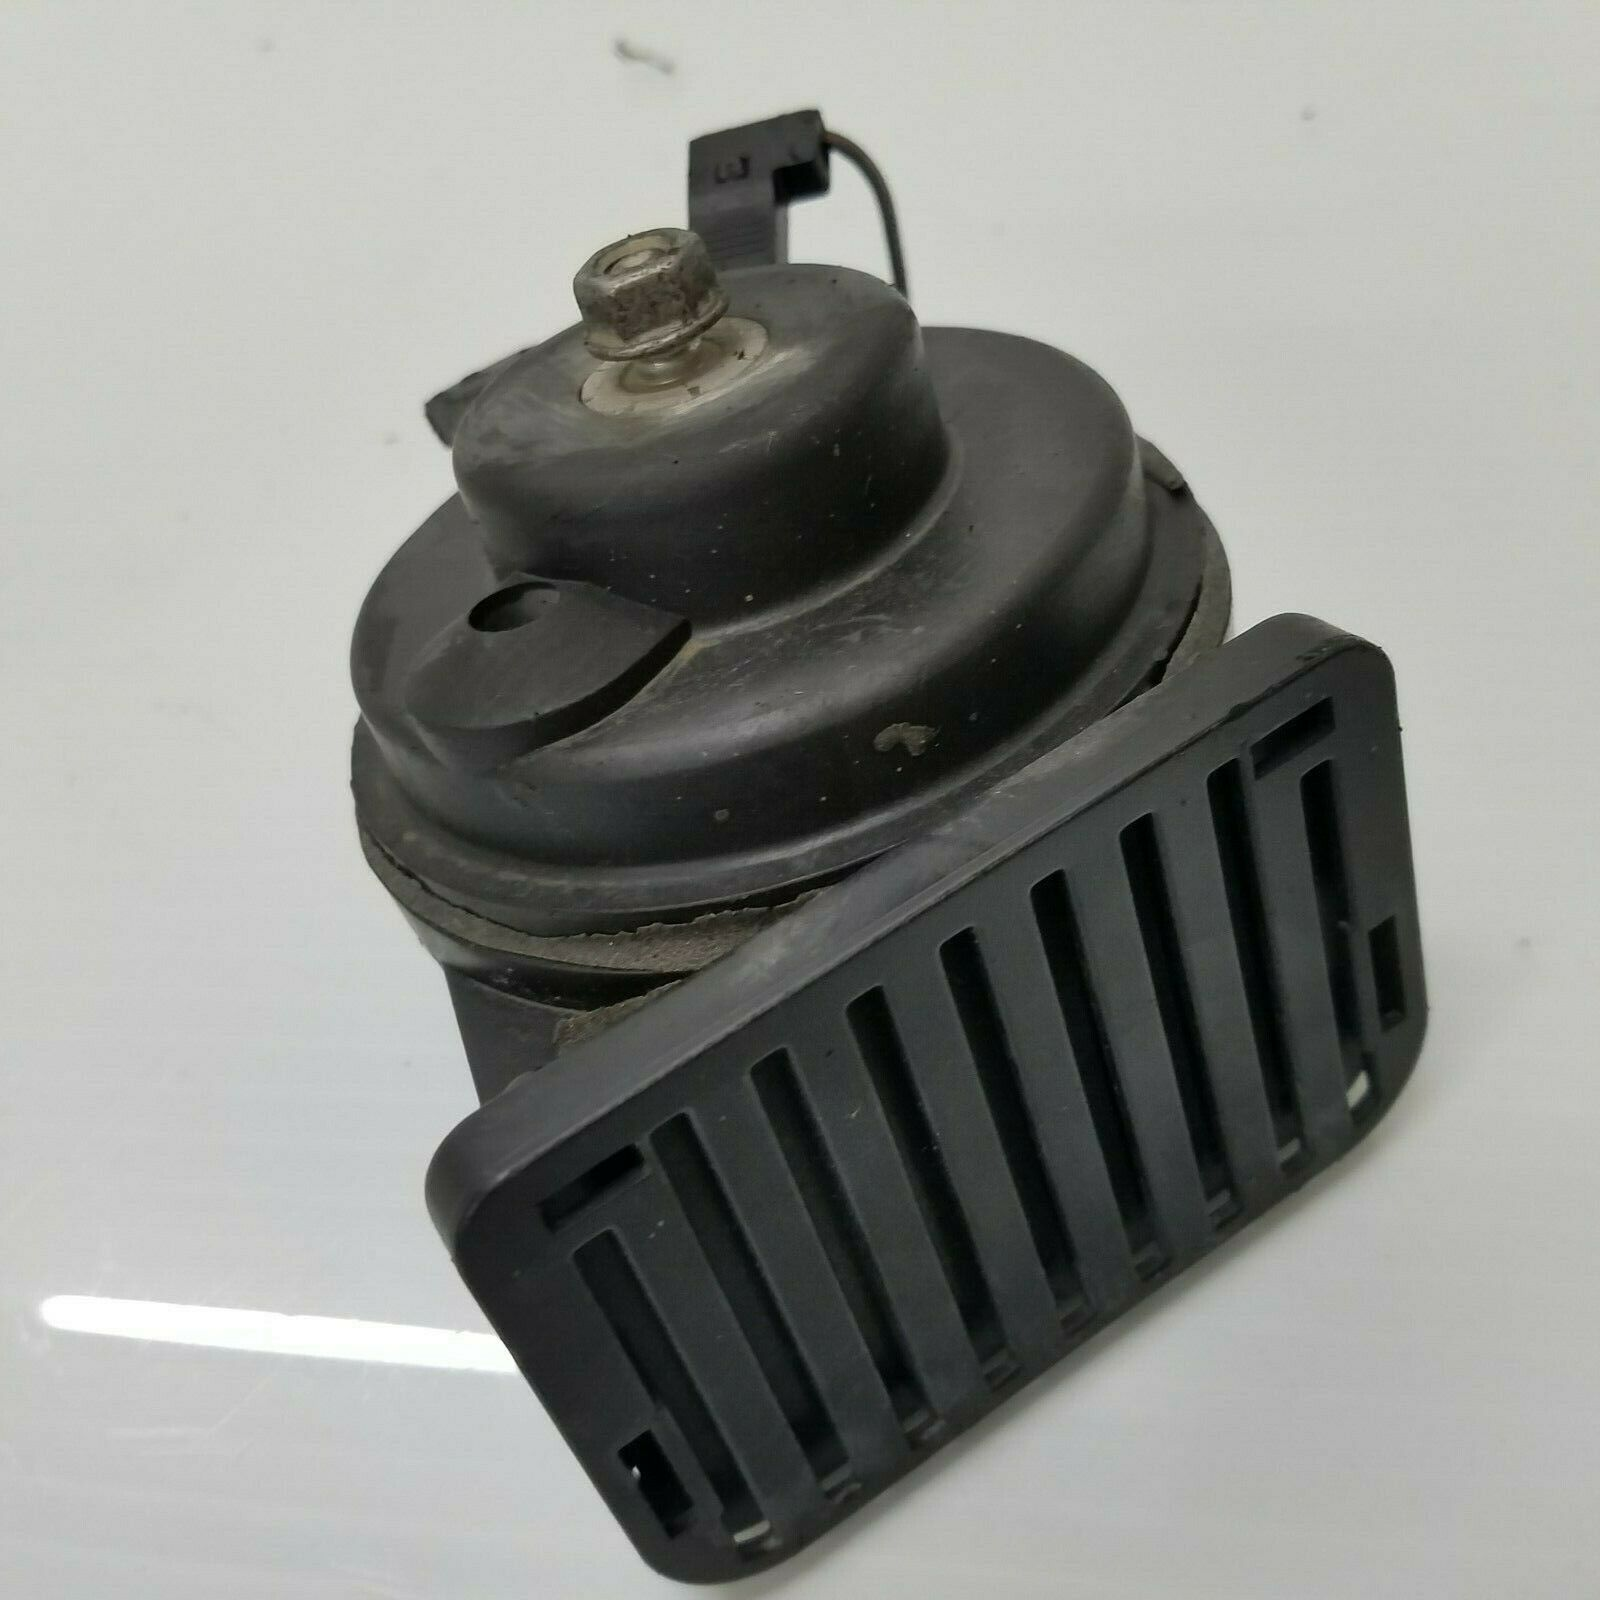 2004-2008 CHRYSLER CROSSFIRE FIAMM LOW TONE SIGNAL PITCH HORN OEM 0055306  Does not apply cross5